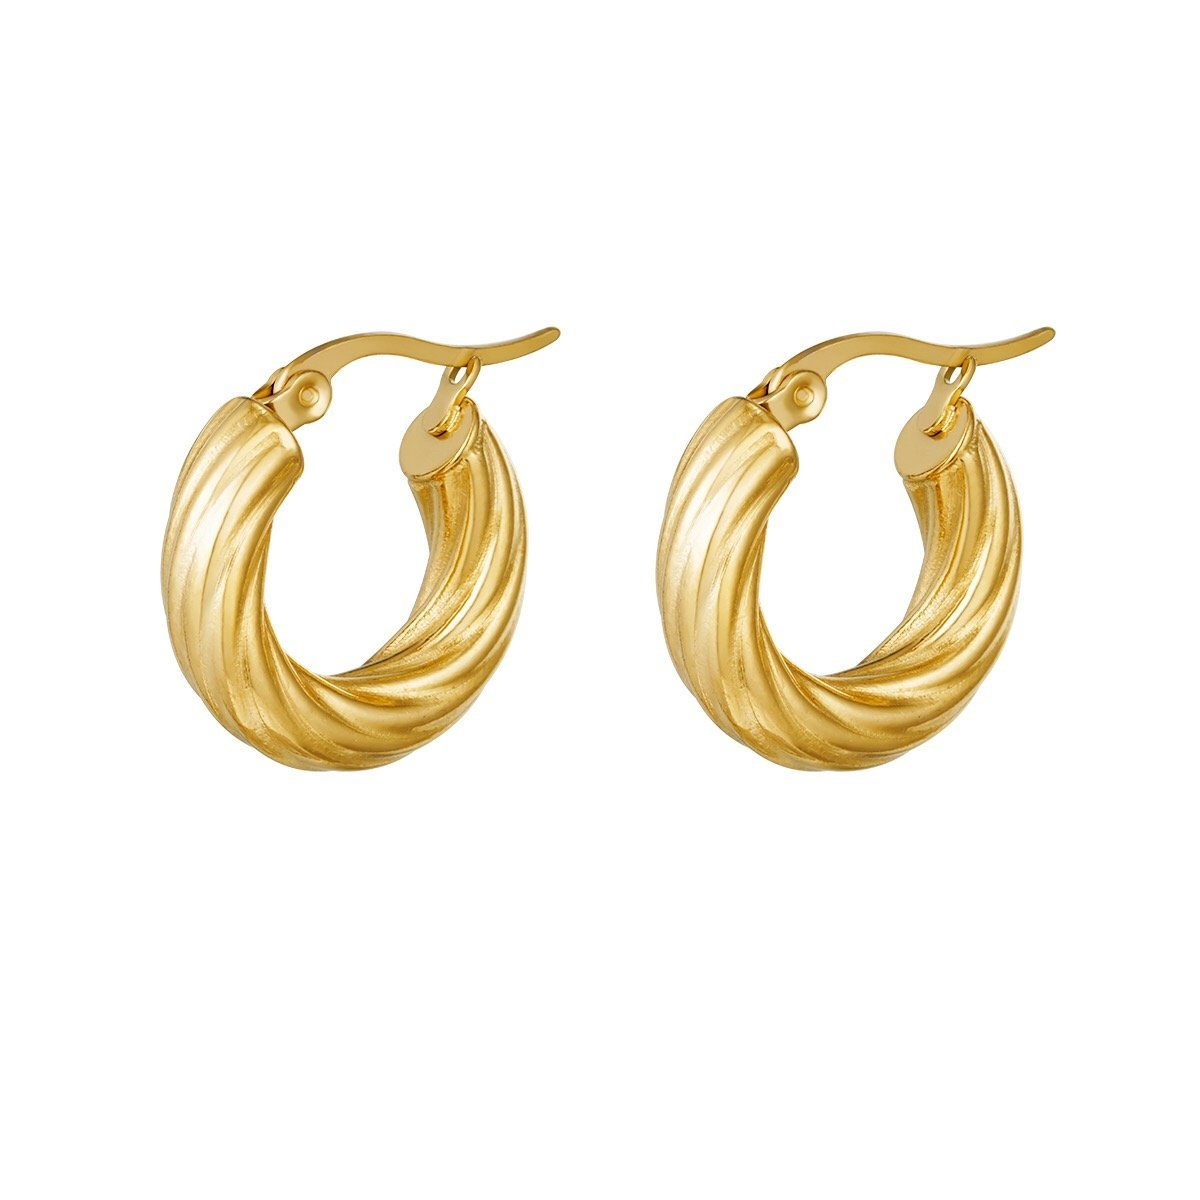 Curly Hoops freeshipping - Mintsy